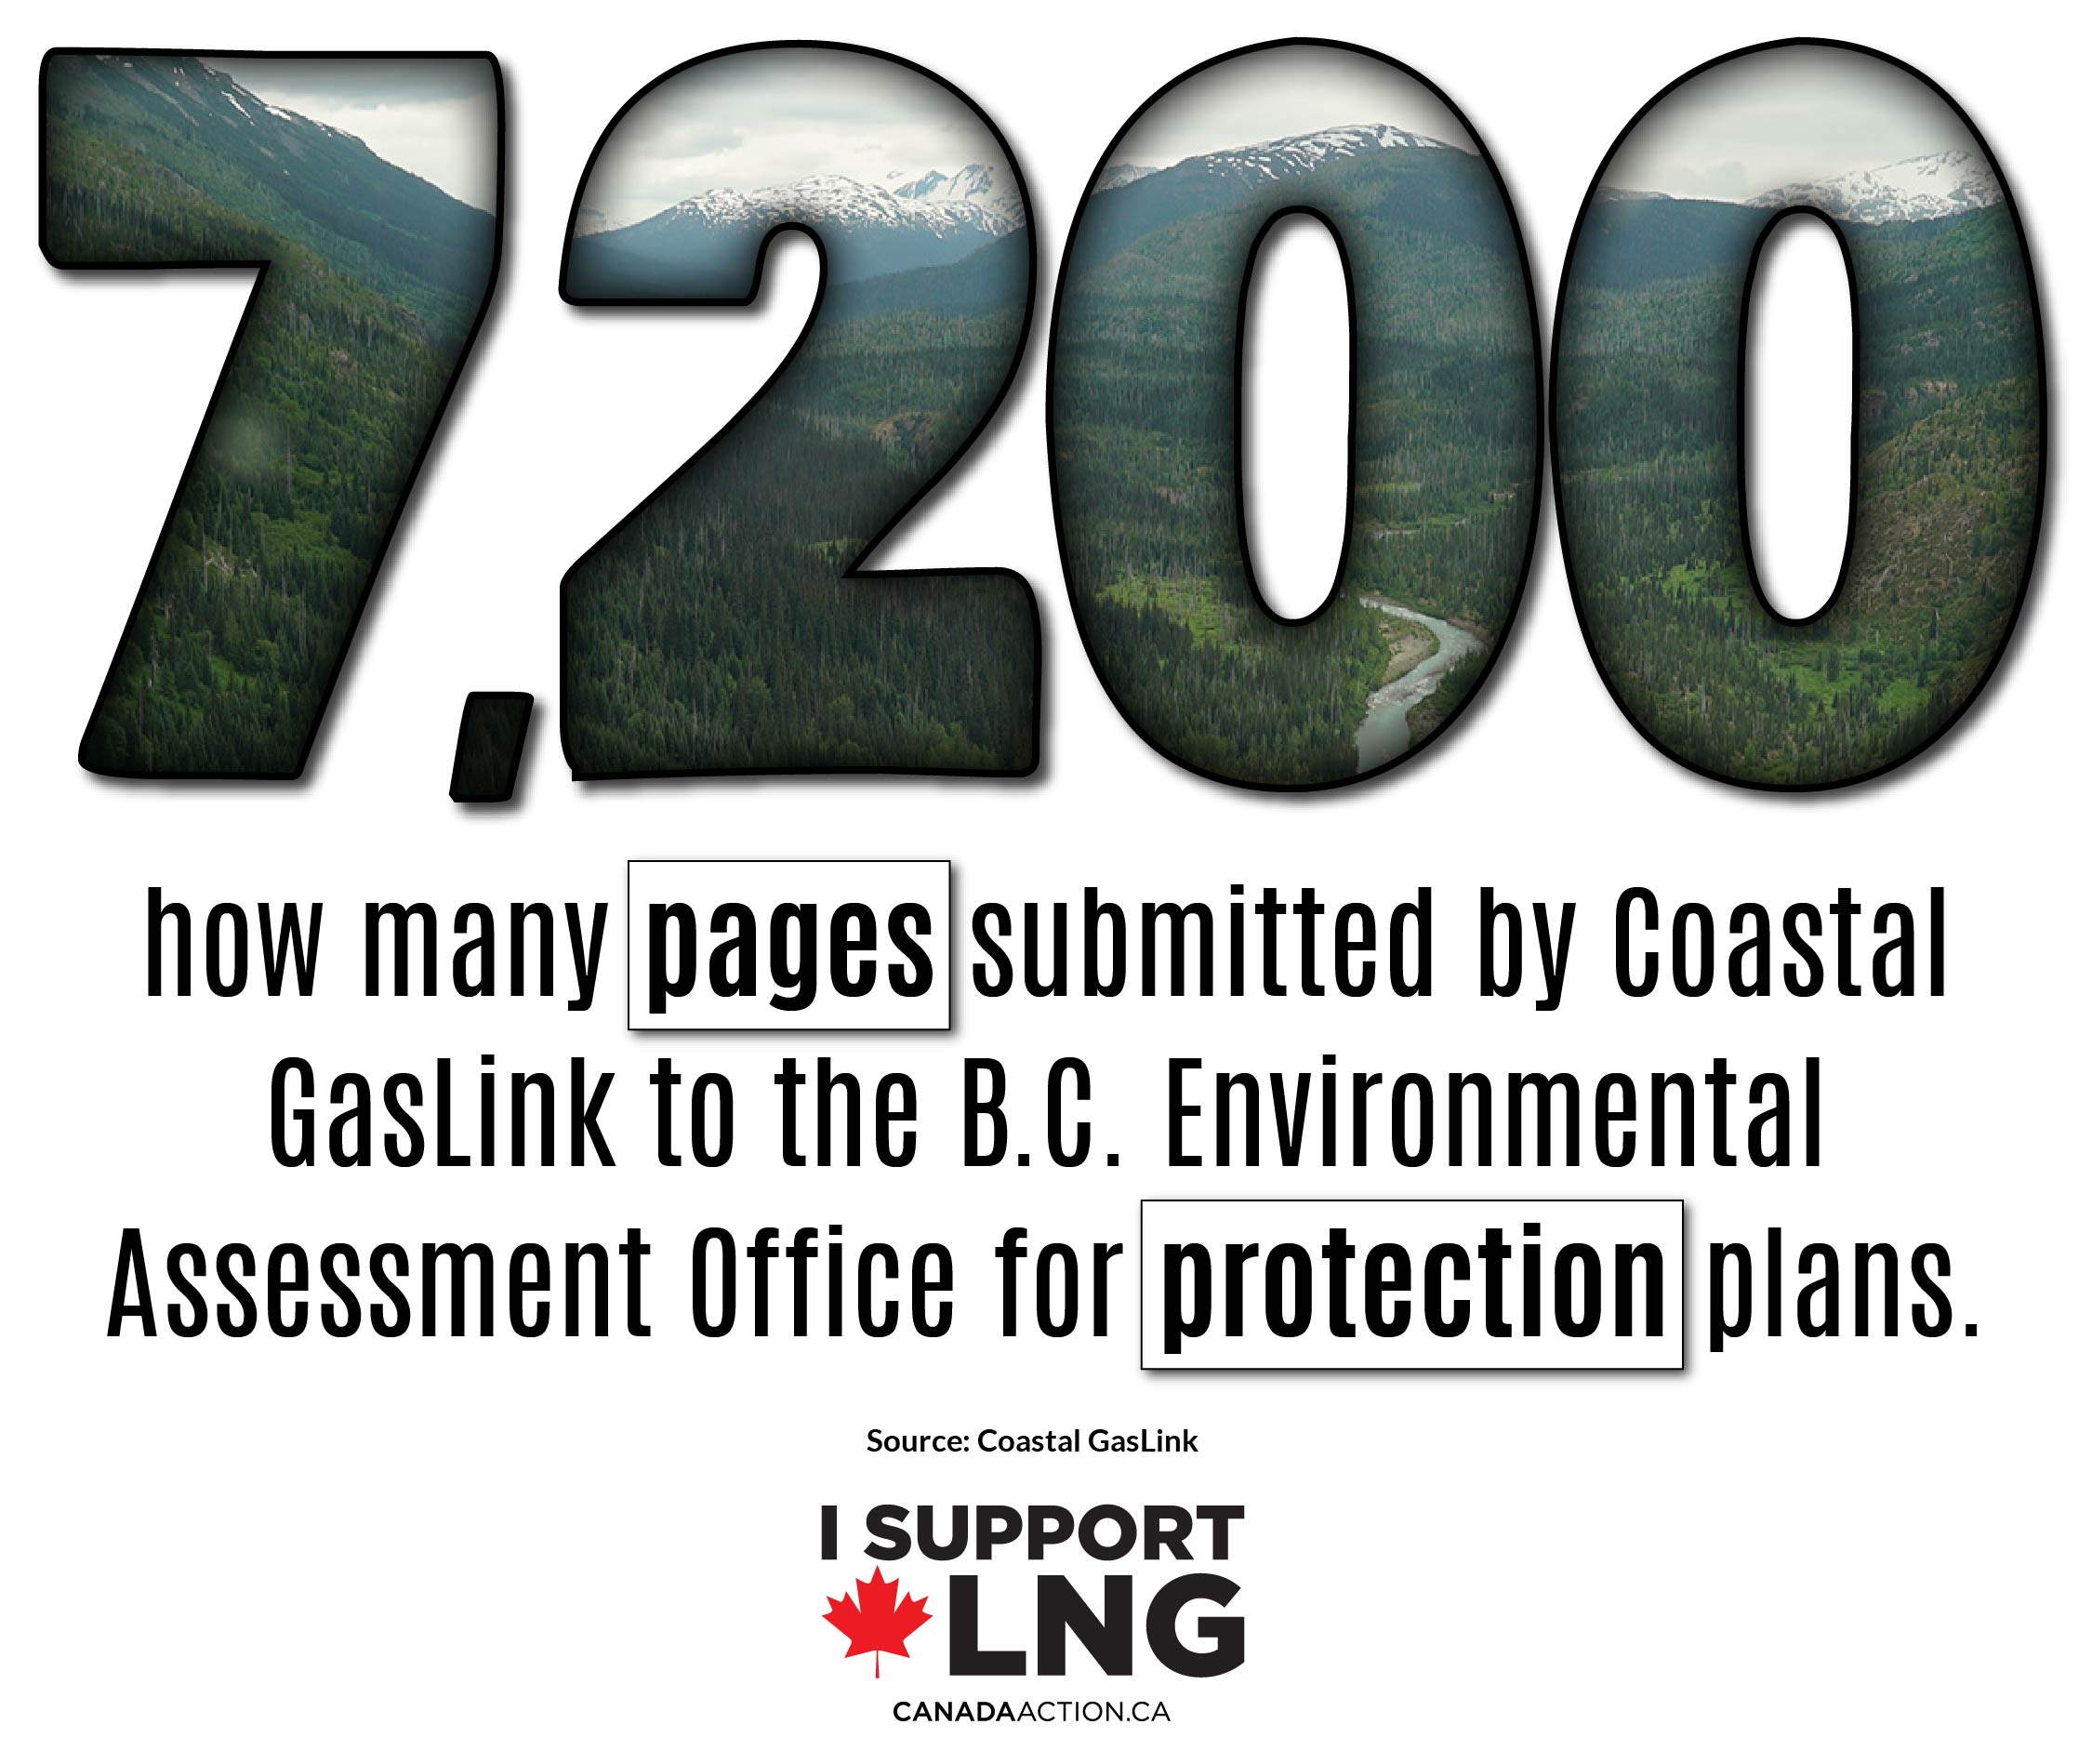 coastal gaslink pipeline environmental assessment had 7200 pages